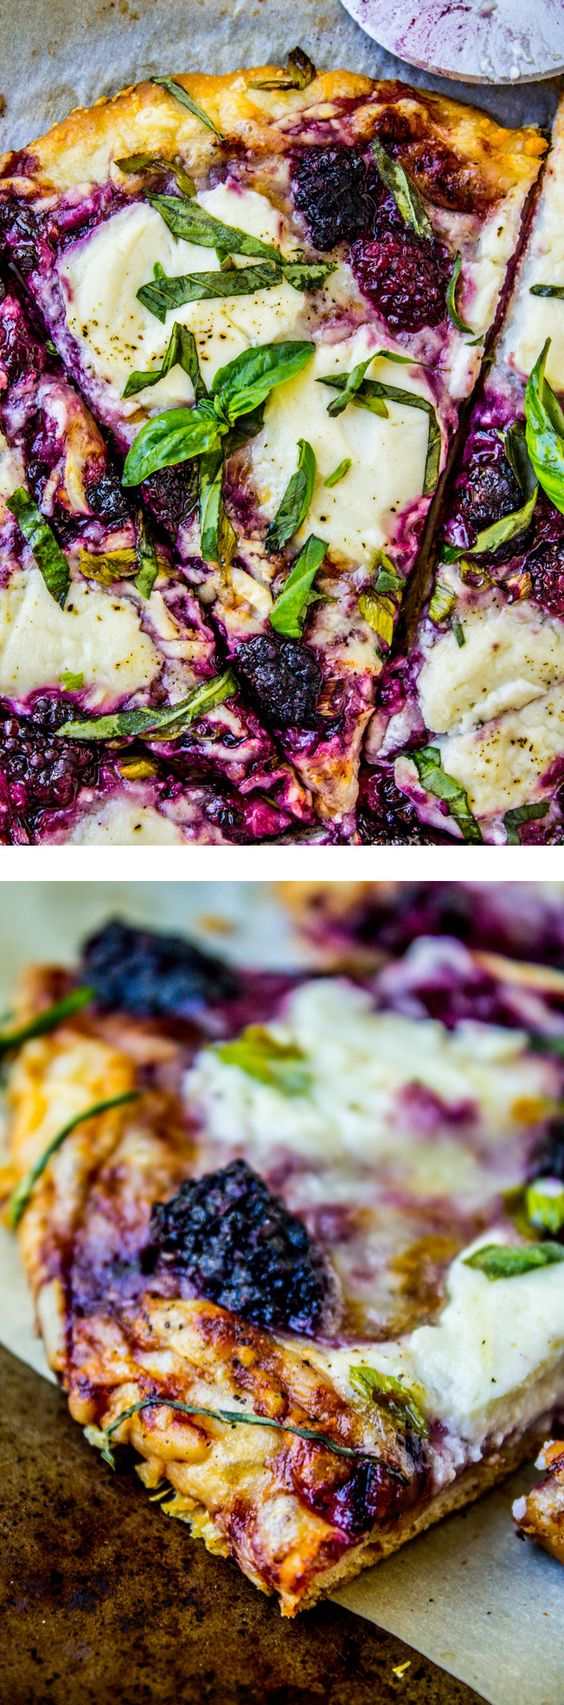 Blackberry Ricotta Pizza with Basil from The Food Charlatan // The perfect EASY summer pizza!